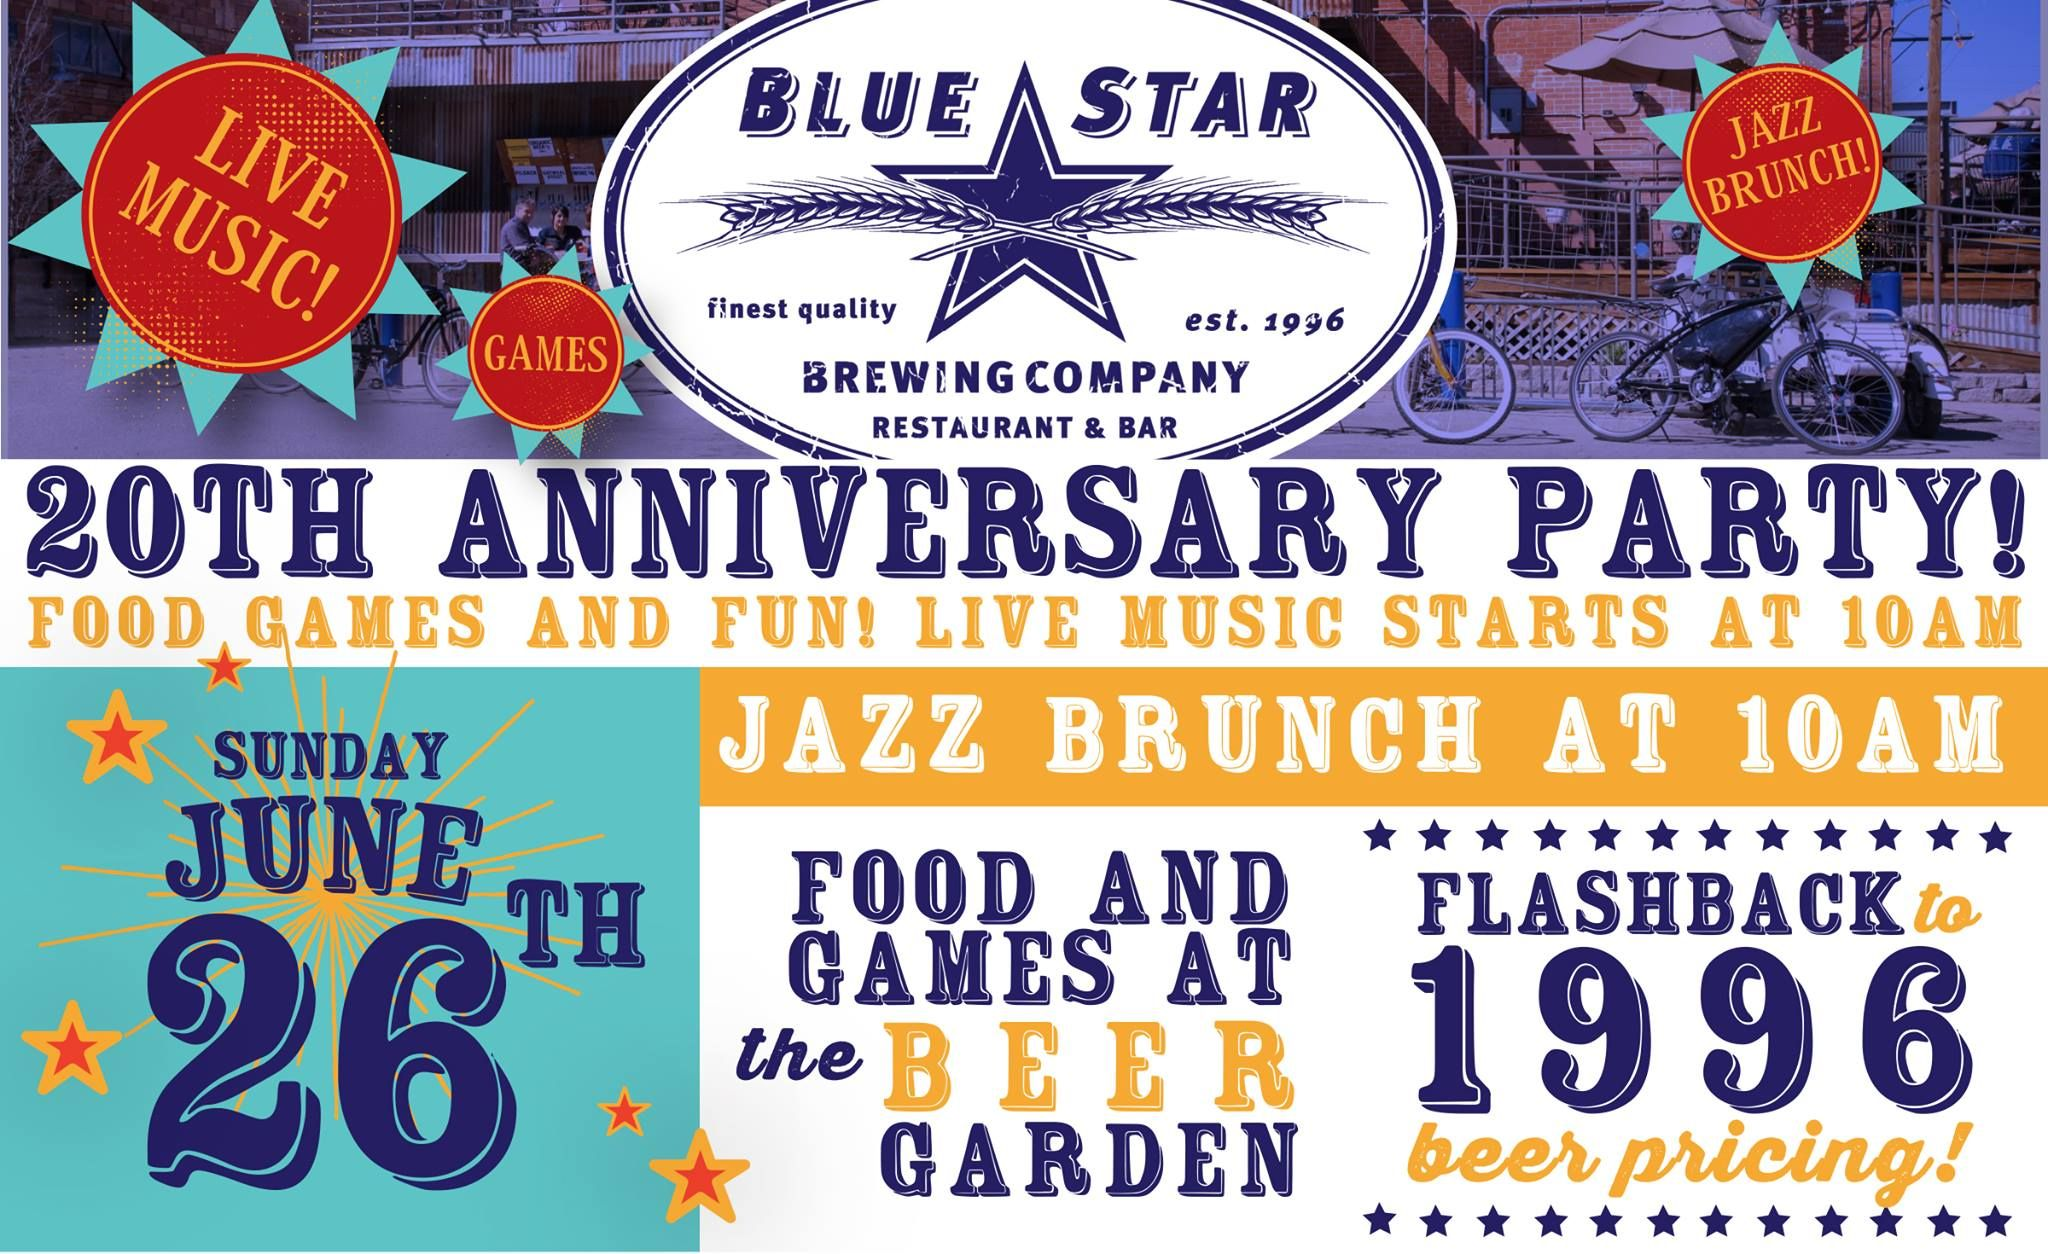 Come Celebrate Blue Star Brewing Company S 20th Anniversary This Sunday June 26th Party Starts 10am Blue Star Brewing Co Brewing